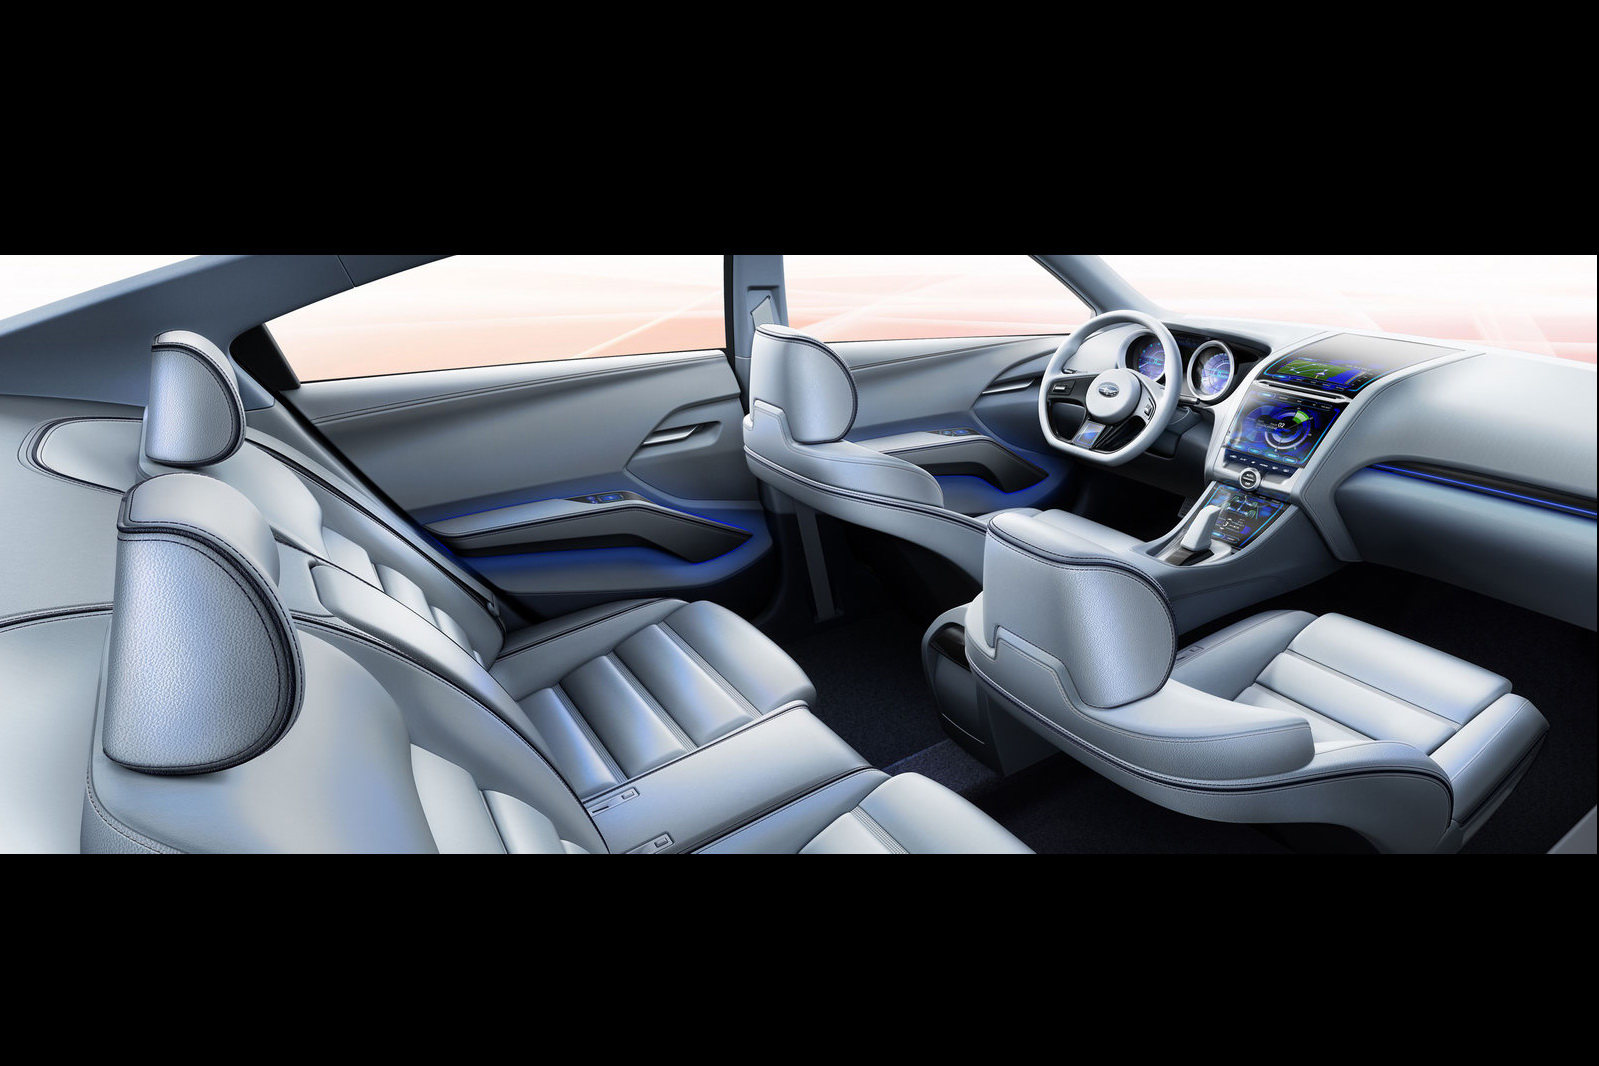 2010 new subaru impreza concept car autos car. Black Bedroom Furniture Sets. Home Design Ideas